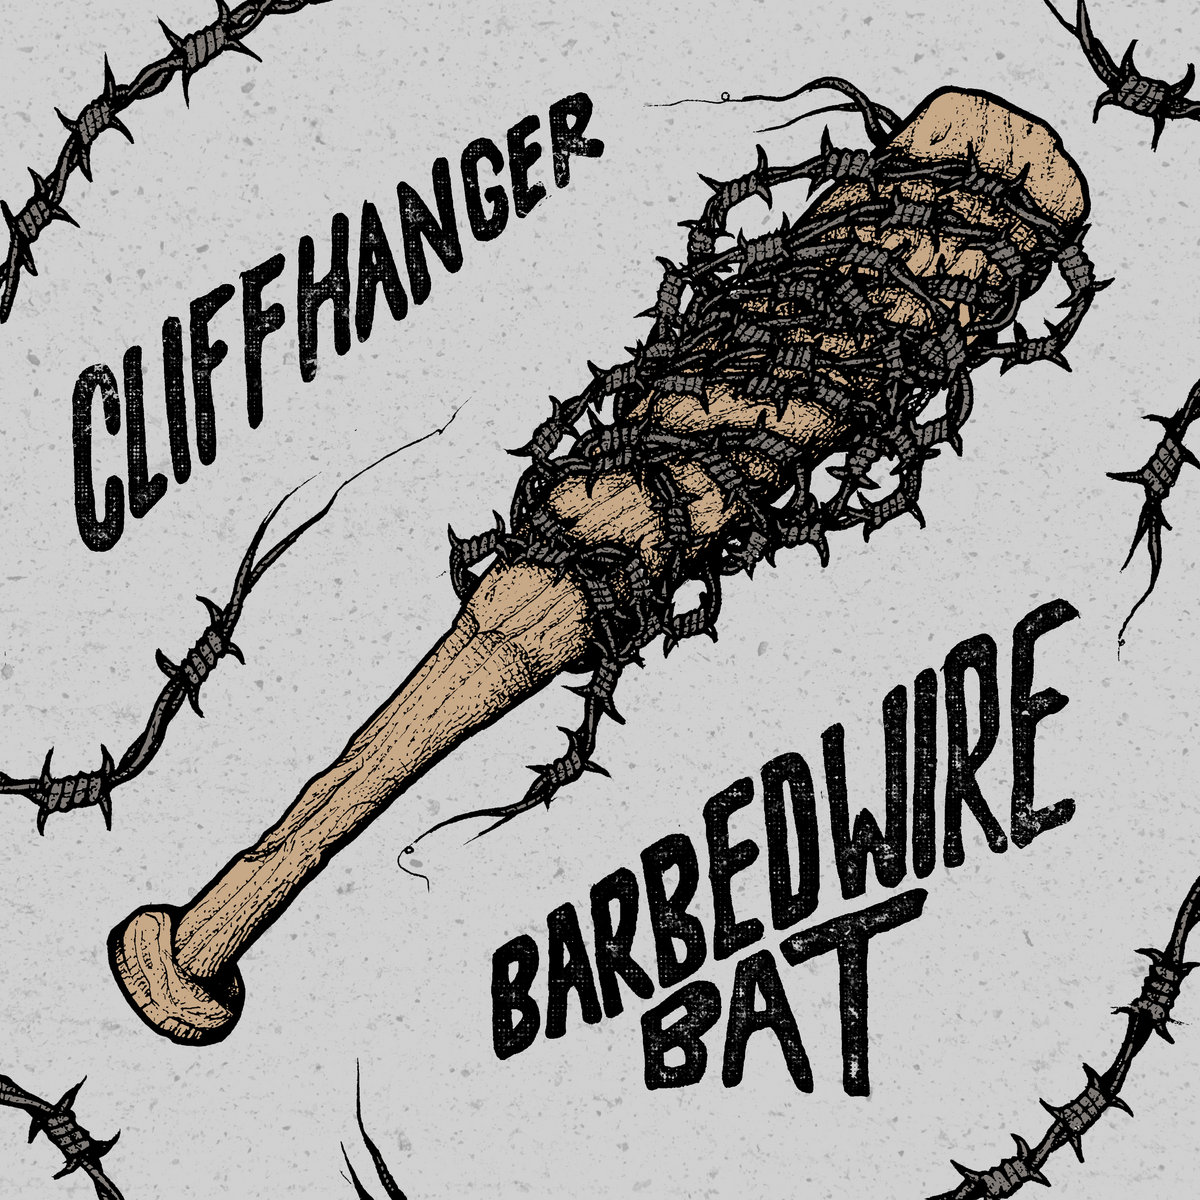 Barbed Wire Bat | Cliffhanger